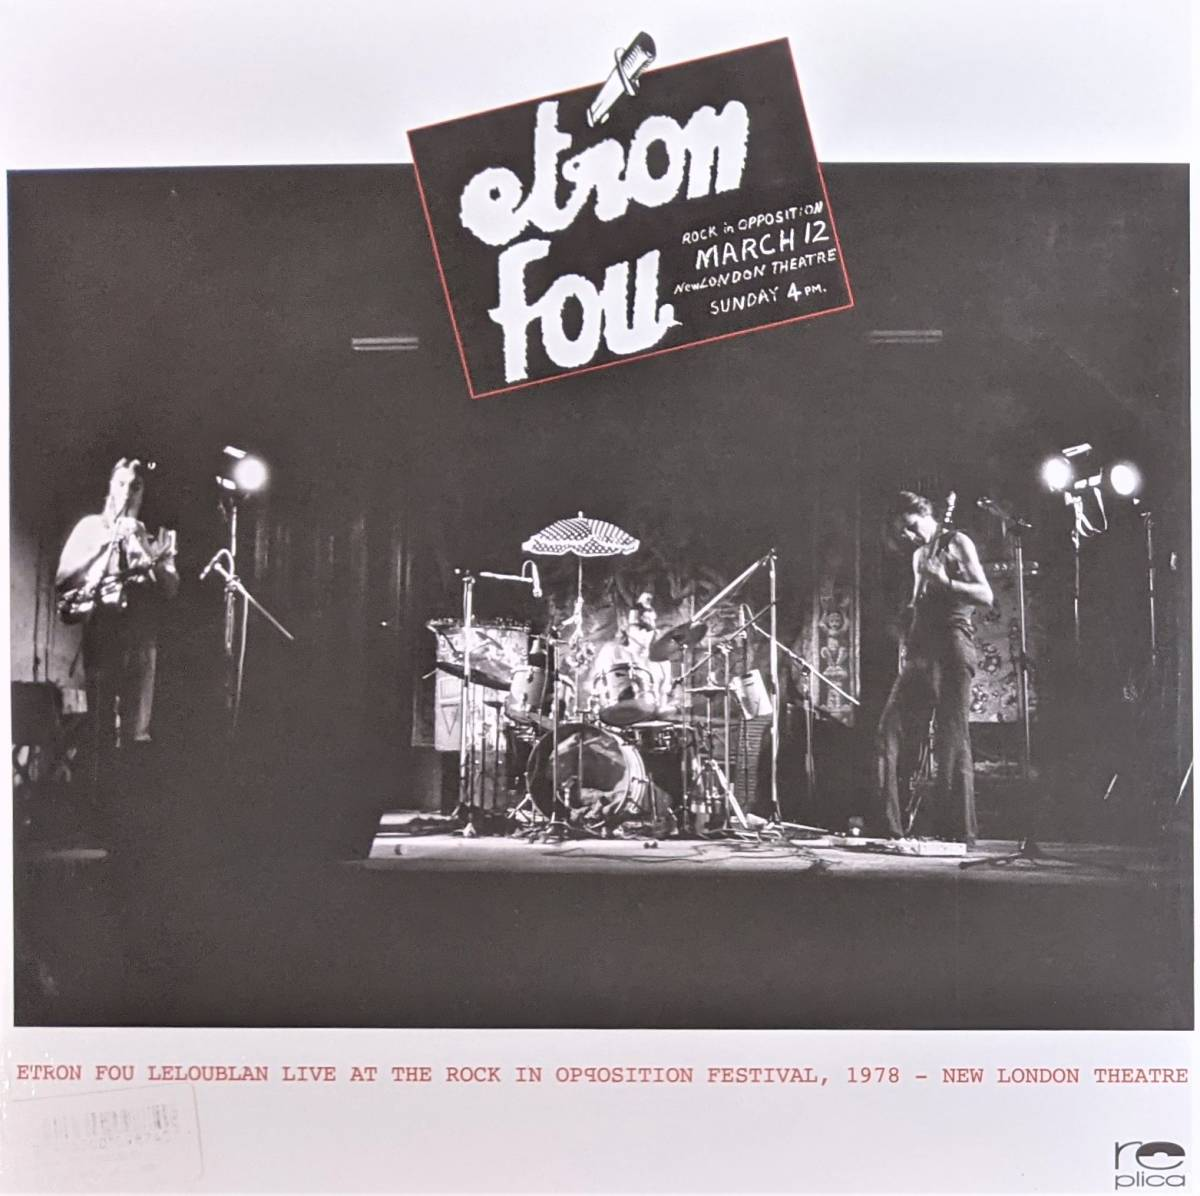 Etron Fou Leloublan - Live At The Rock In Opposition Festival, 1978 - New London Theatre 限定アナログ・レコード